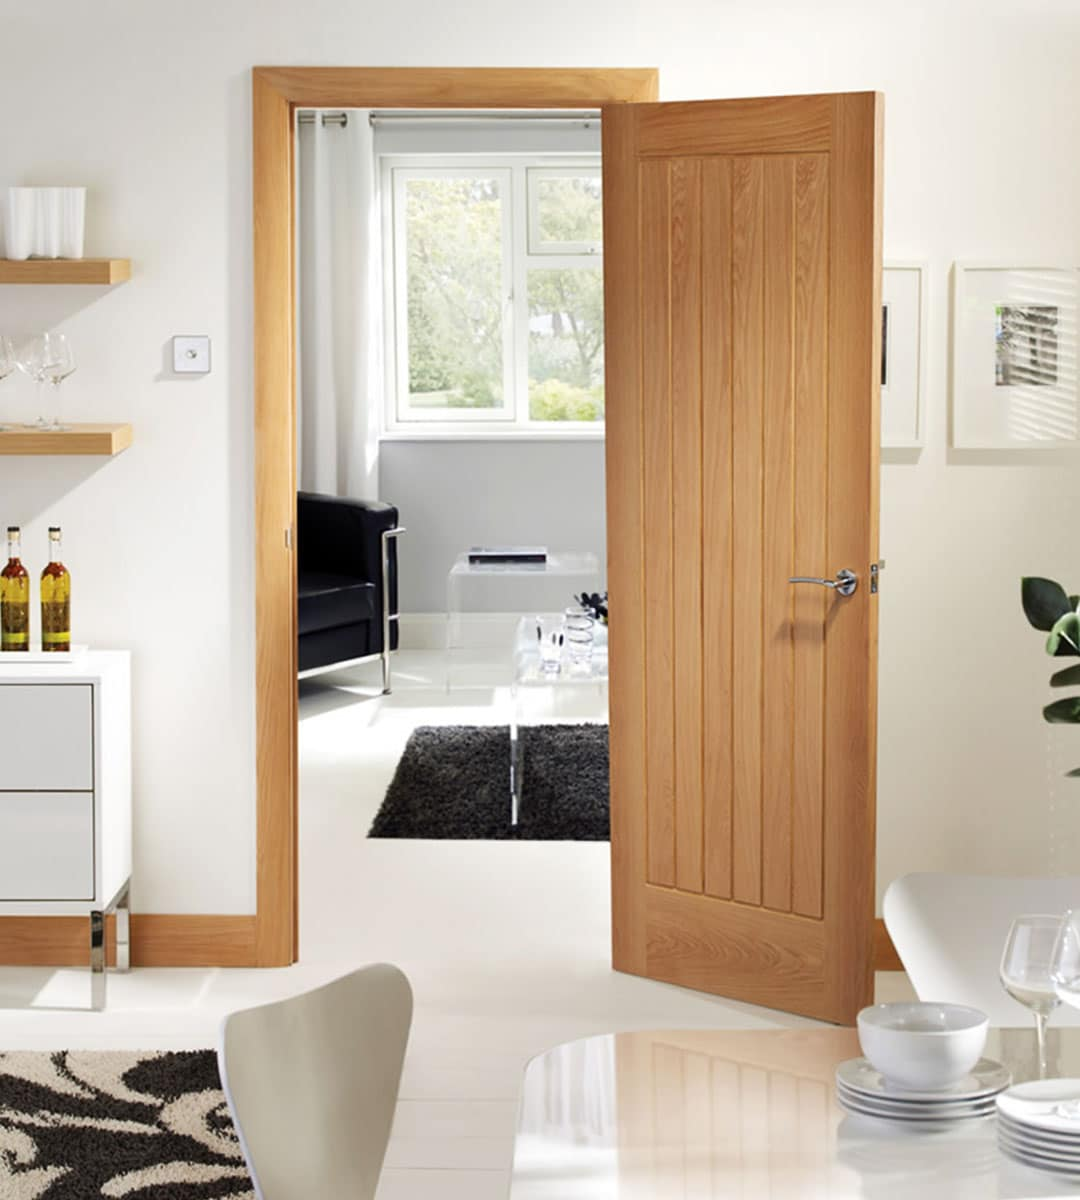 suffolk oak internal bedroom door